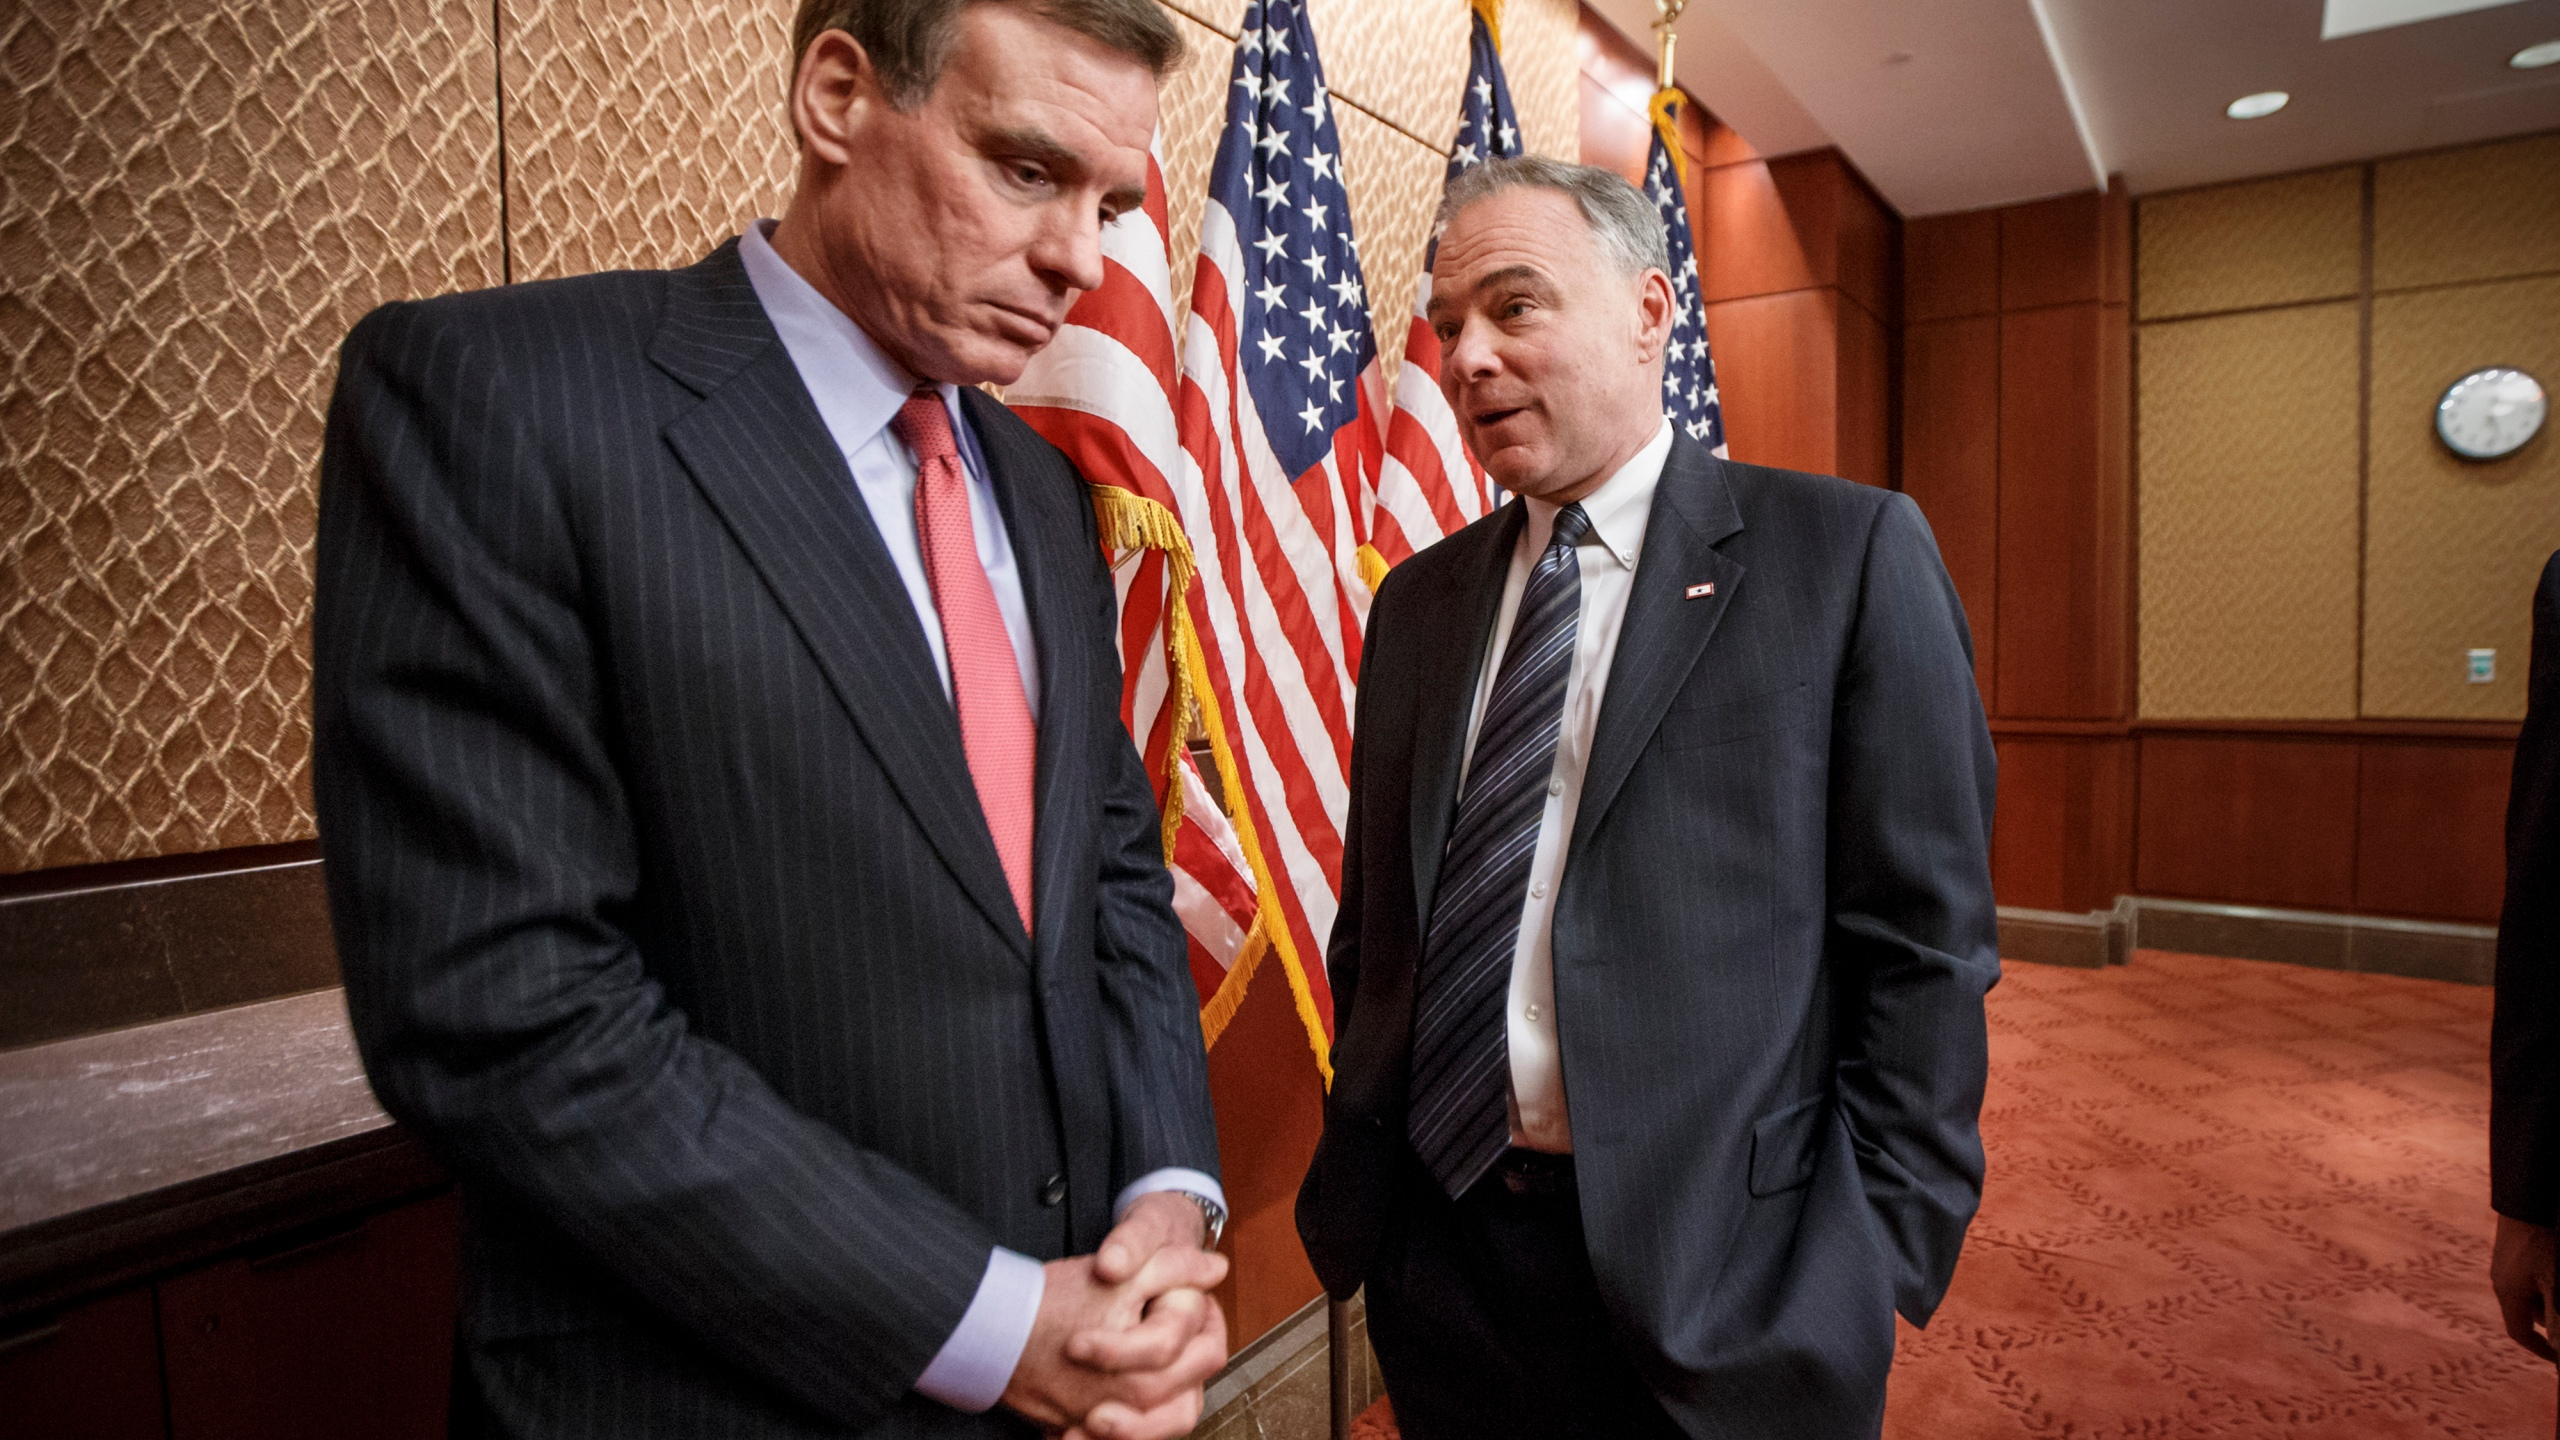 Mark Warner and Tim Kaine